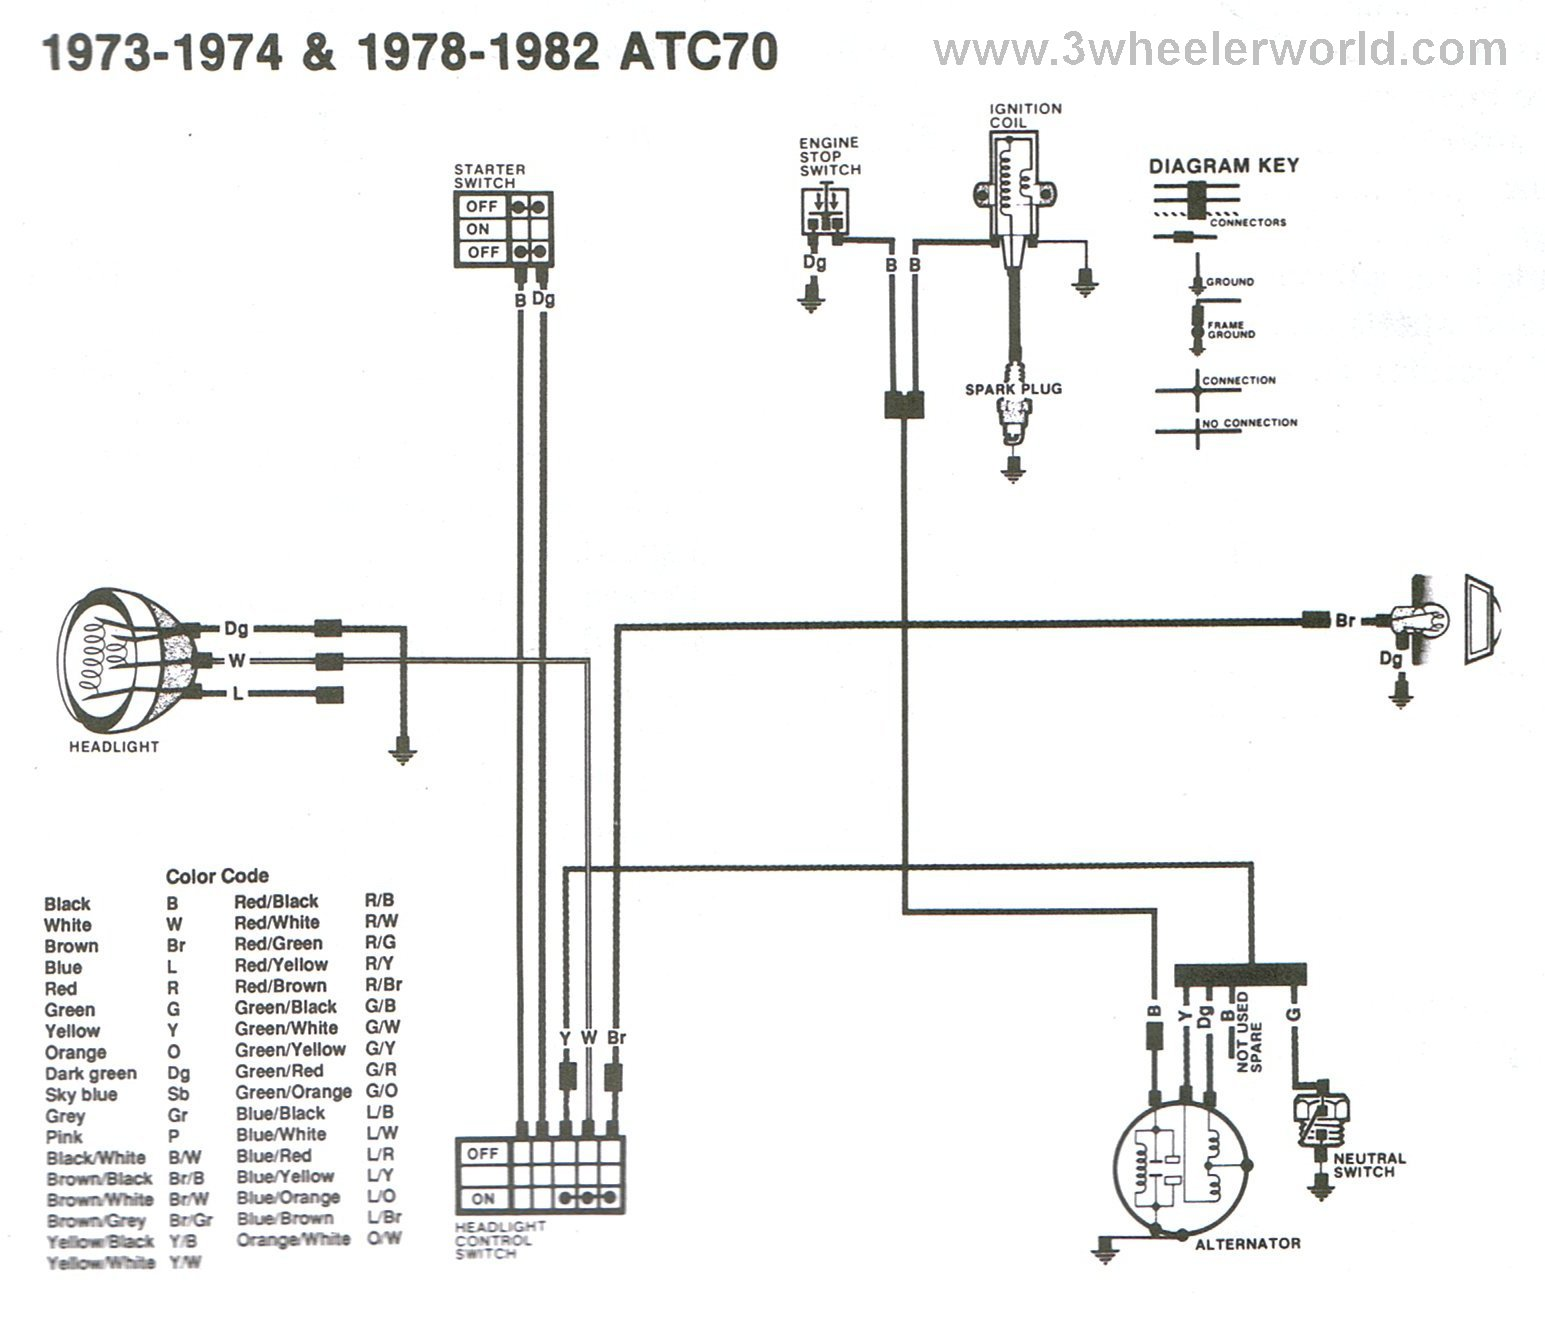 1974 Honda Wire Diagram List Of Schematic Circuit Cb 550 Wiring 3 Wheeler World Tech Help Diagrams Rh 3wheelerworld Com St90